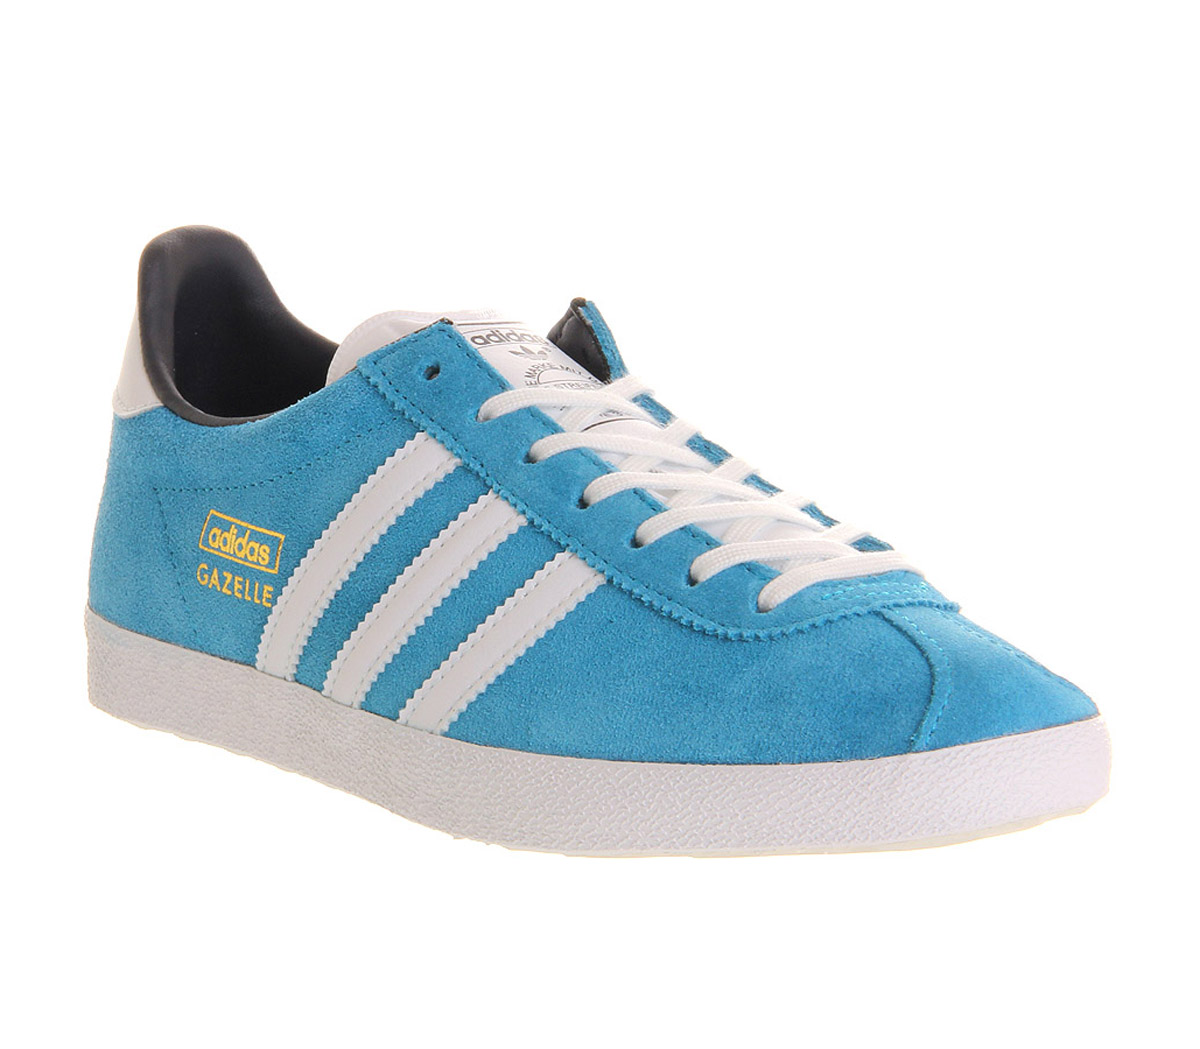 more photos af202 10e9f Gallery. Womens Adidas Gazelle ...